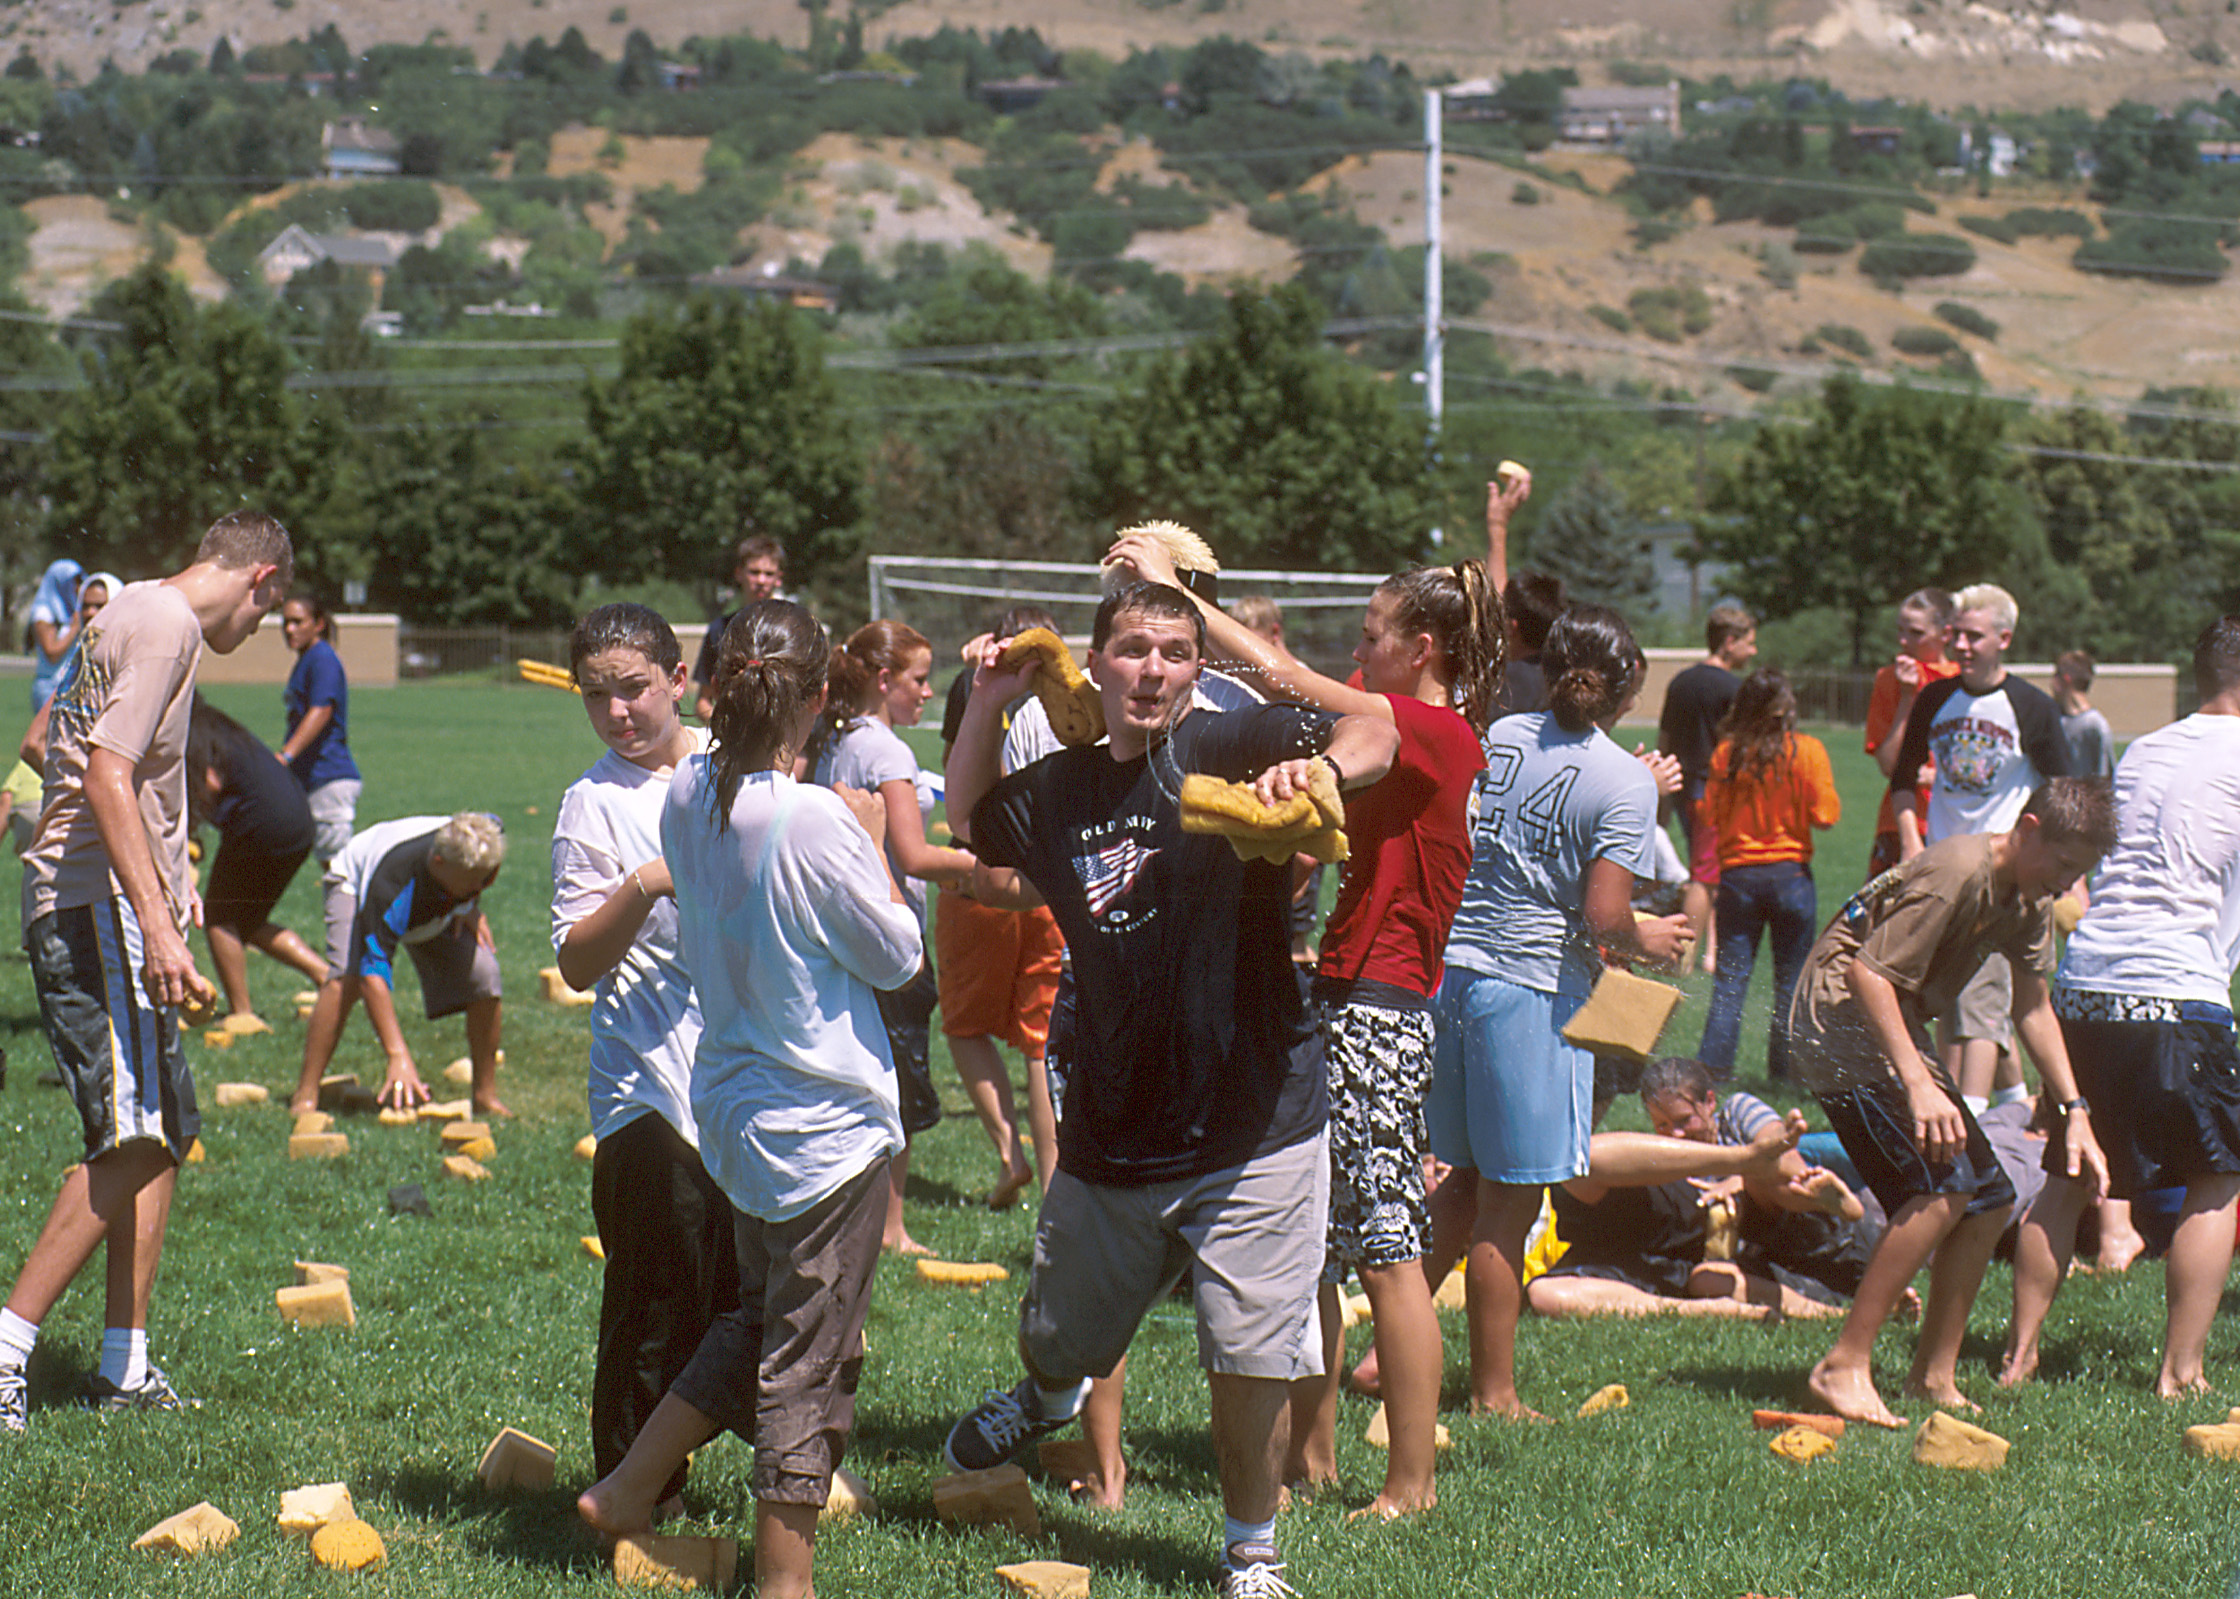 Youth engage in a water fight at Especially for Youth in 2000.